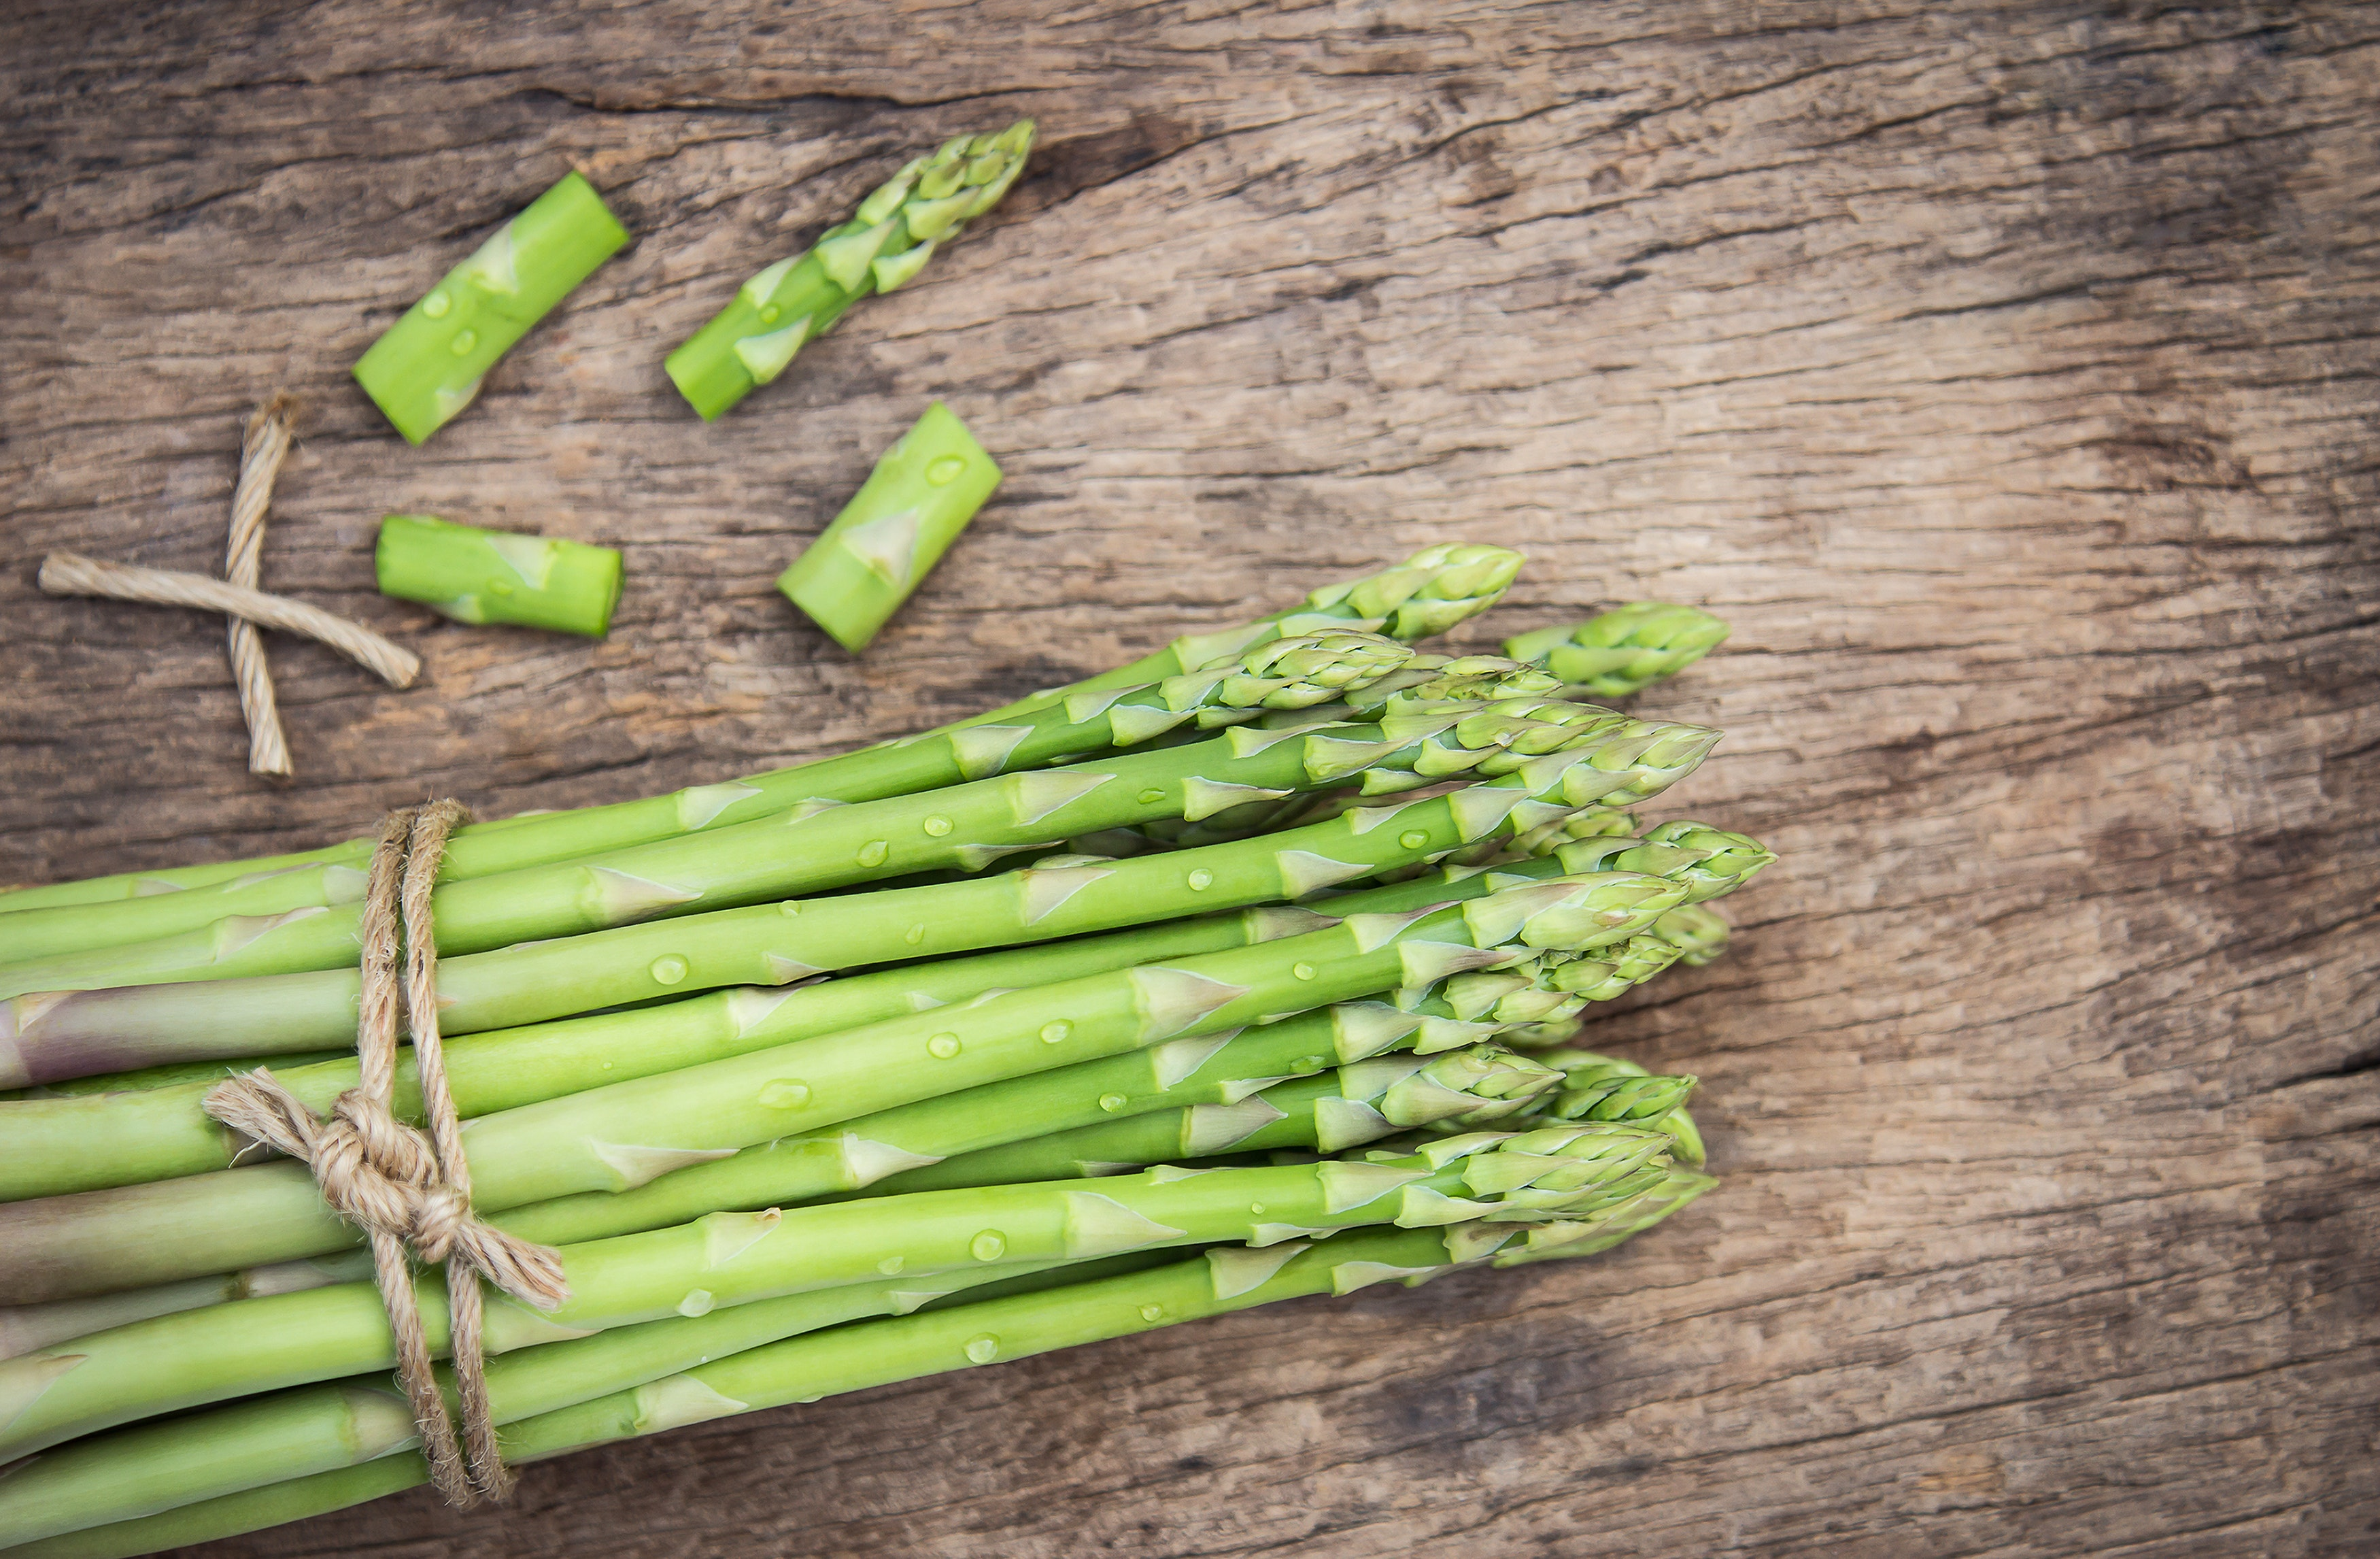 For those in temperate climates, asparagus is one of the first vegetables to emerge in the spring. (Aphiwat chuangchoem/Pexels)